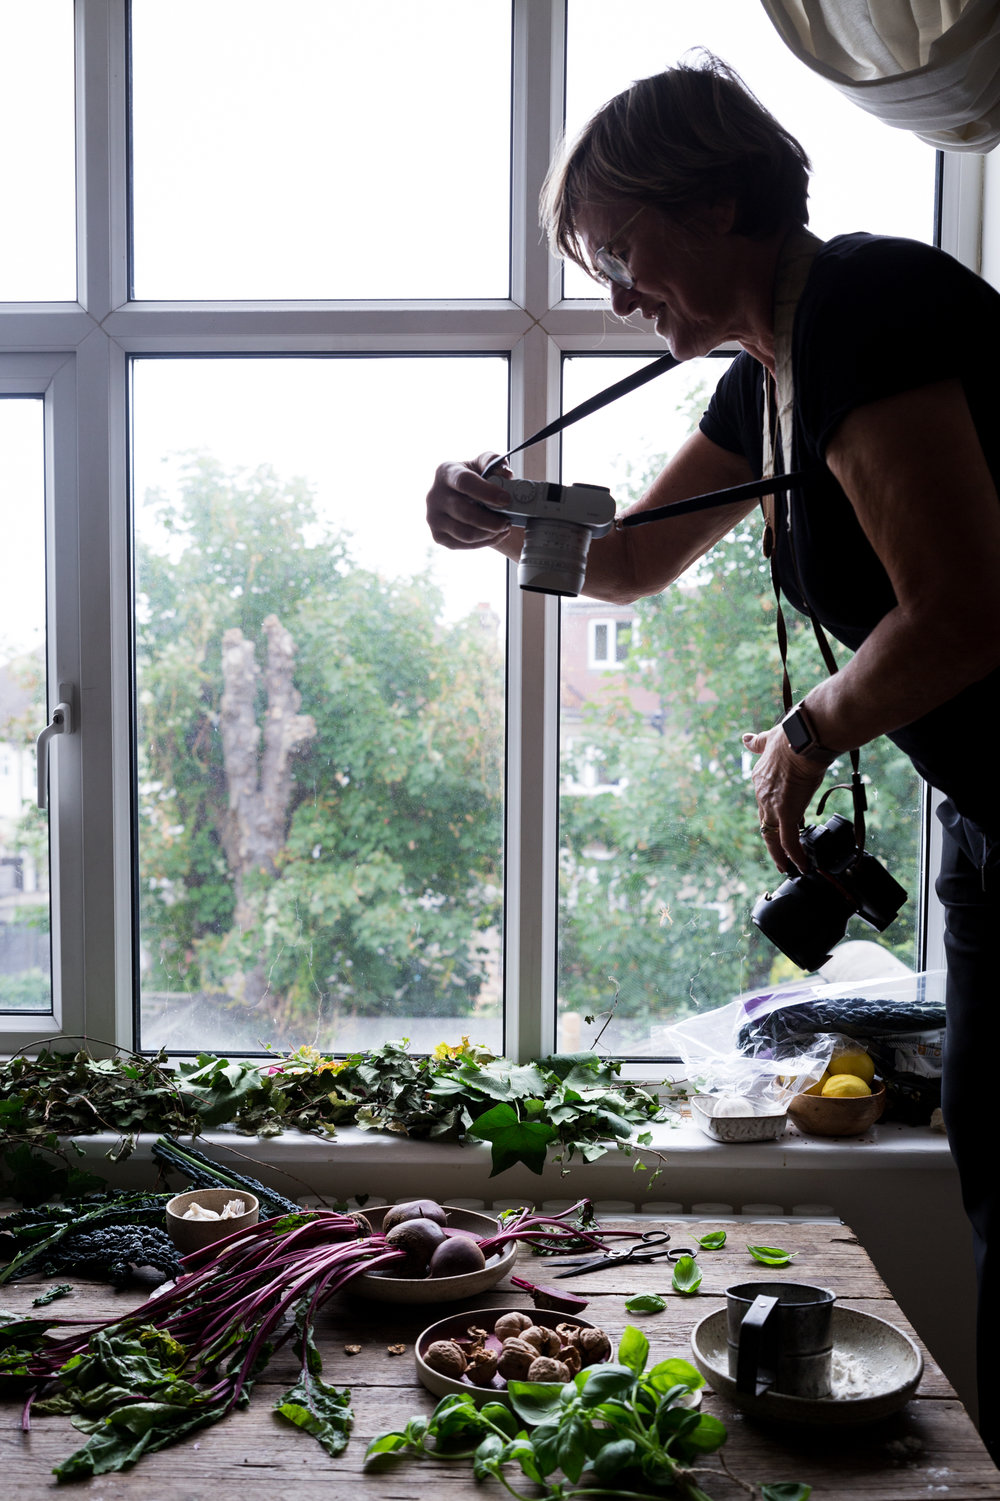 London food photography workshop - Attendee Pat working the flatlay.